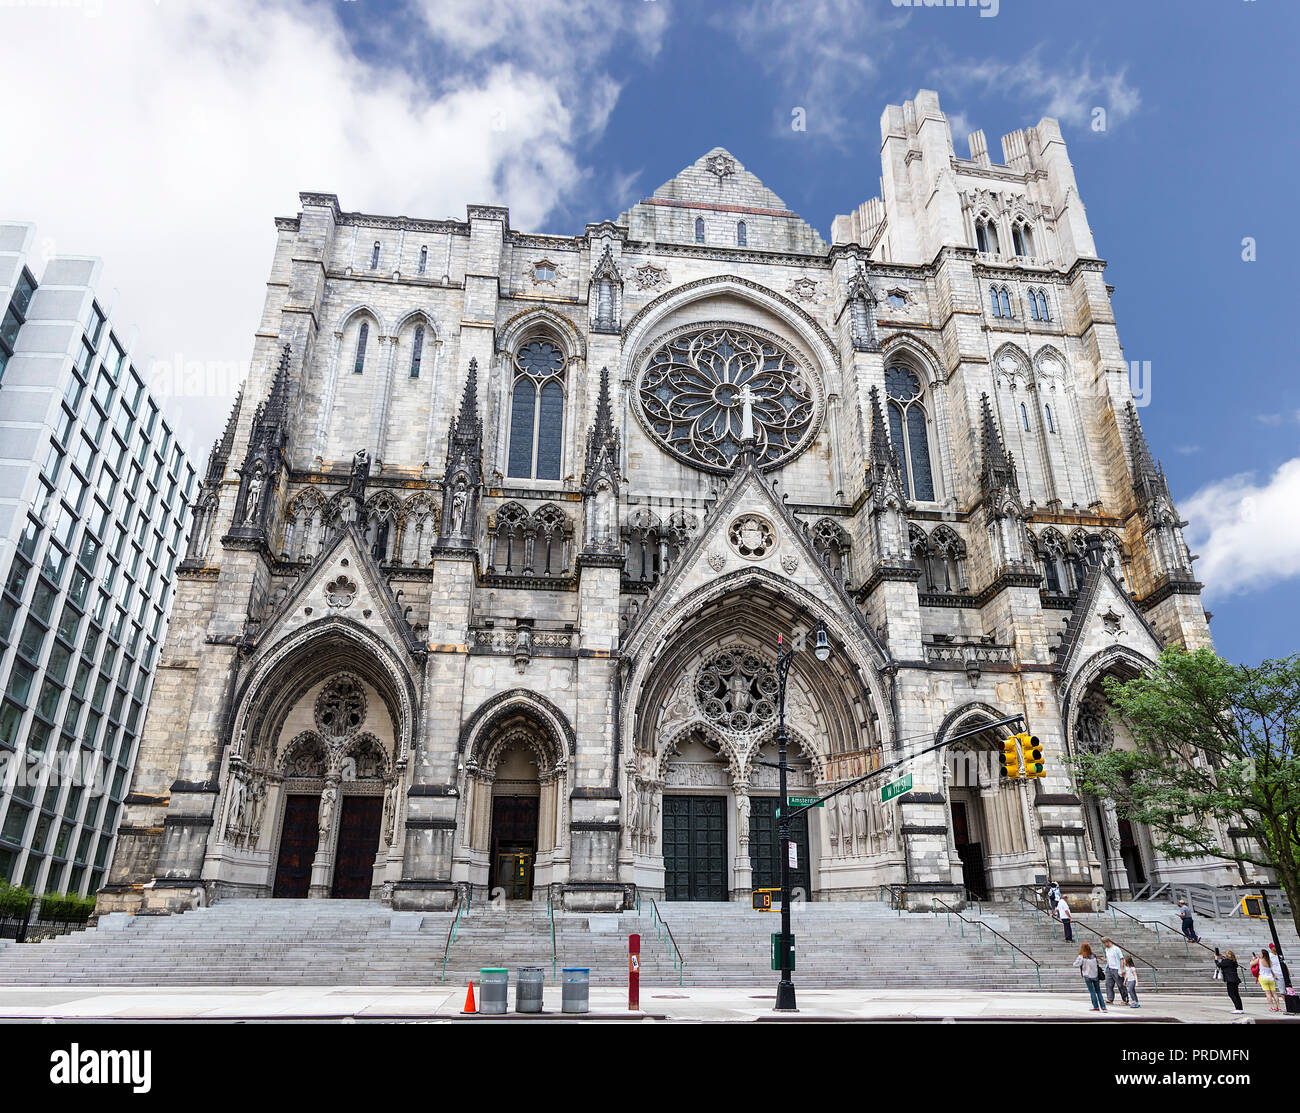 The Cathedral of St. John the Divine, officially the Cathedral Church of Saint John: The Great Divine in the City and Diocese of New York, is the cath - Stock Image